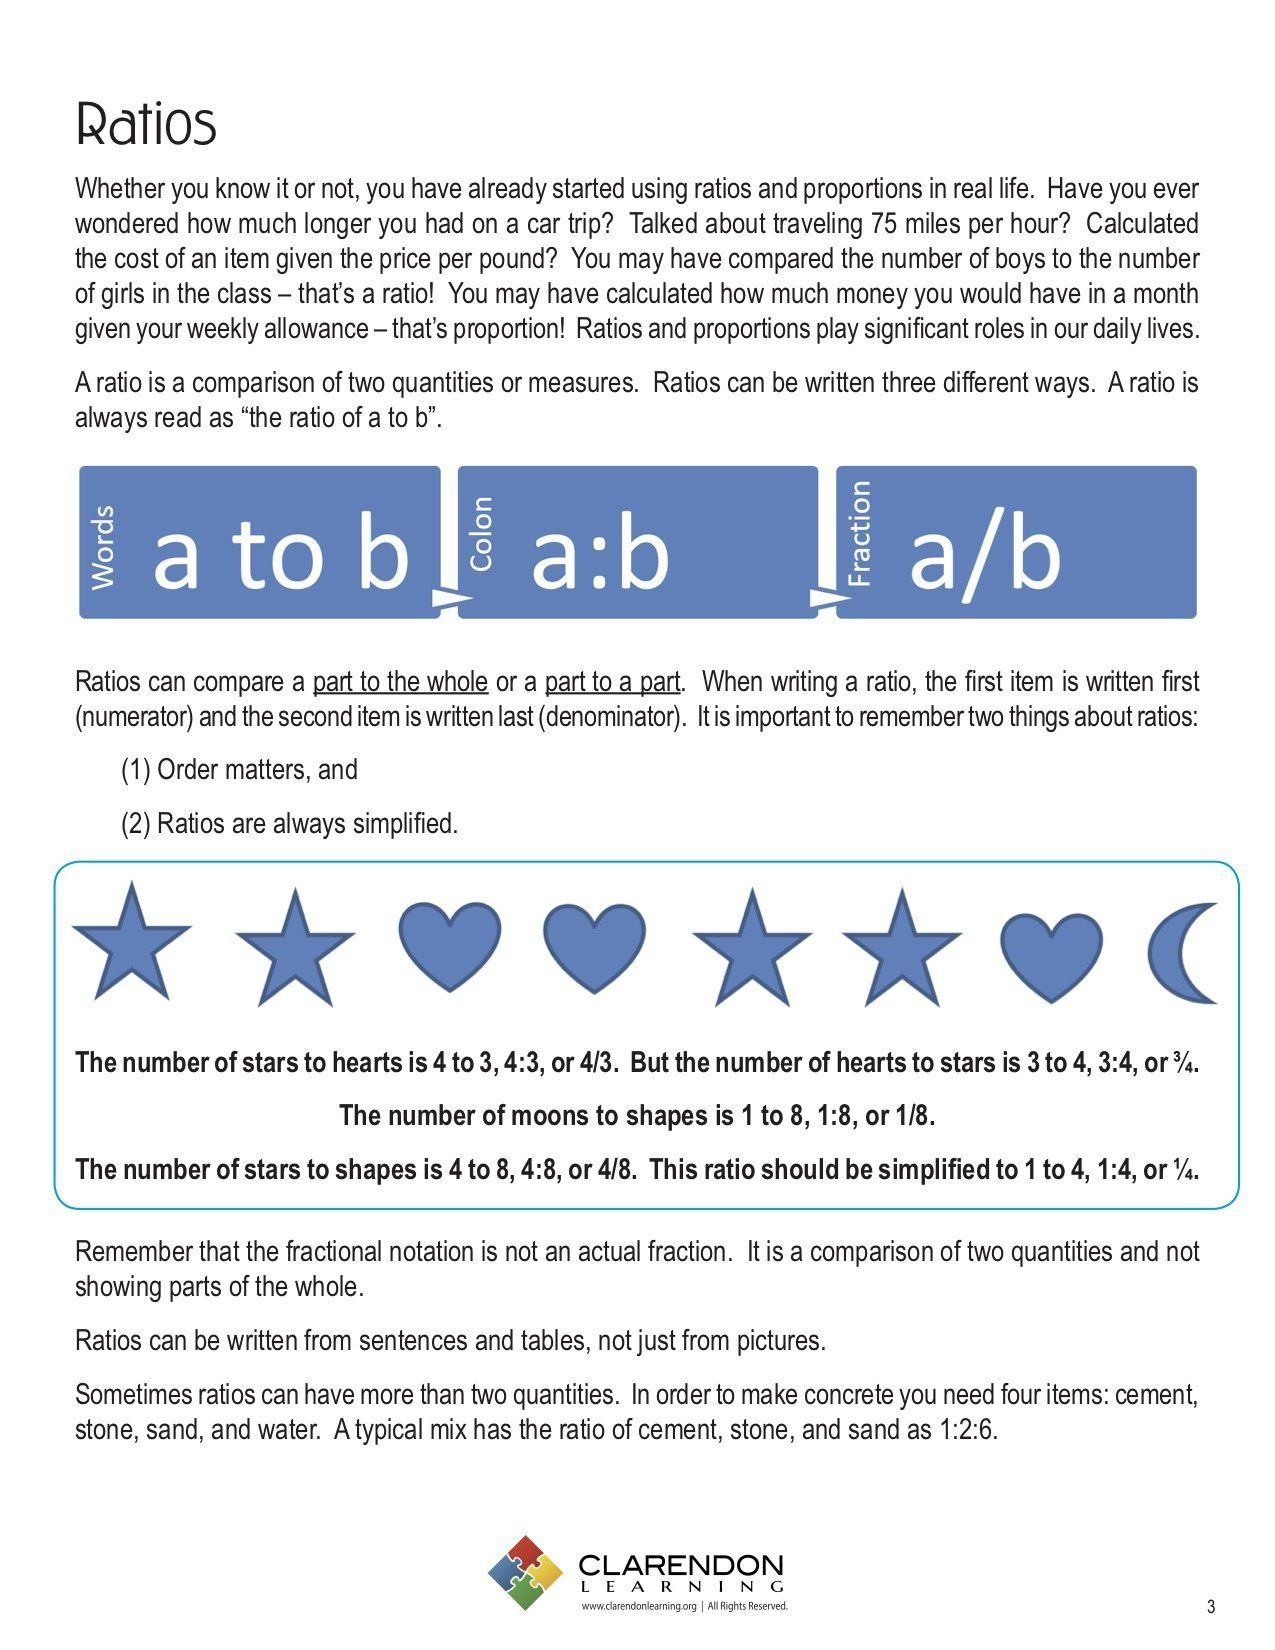 6th Grade Ratios Worksheet Ratio And Proportion Lesson Plan In 2020 6th Grade Worksheets Free Preschool Worksheets Preschool Worksheets